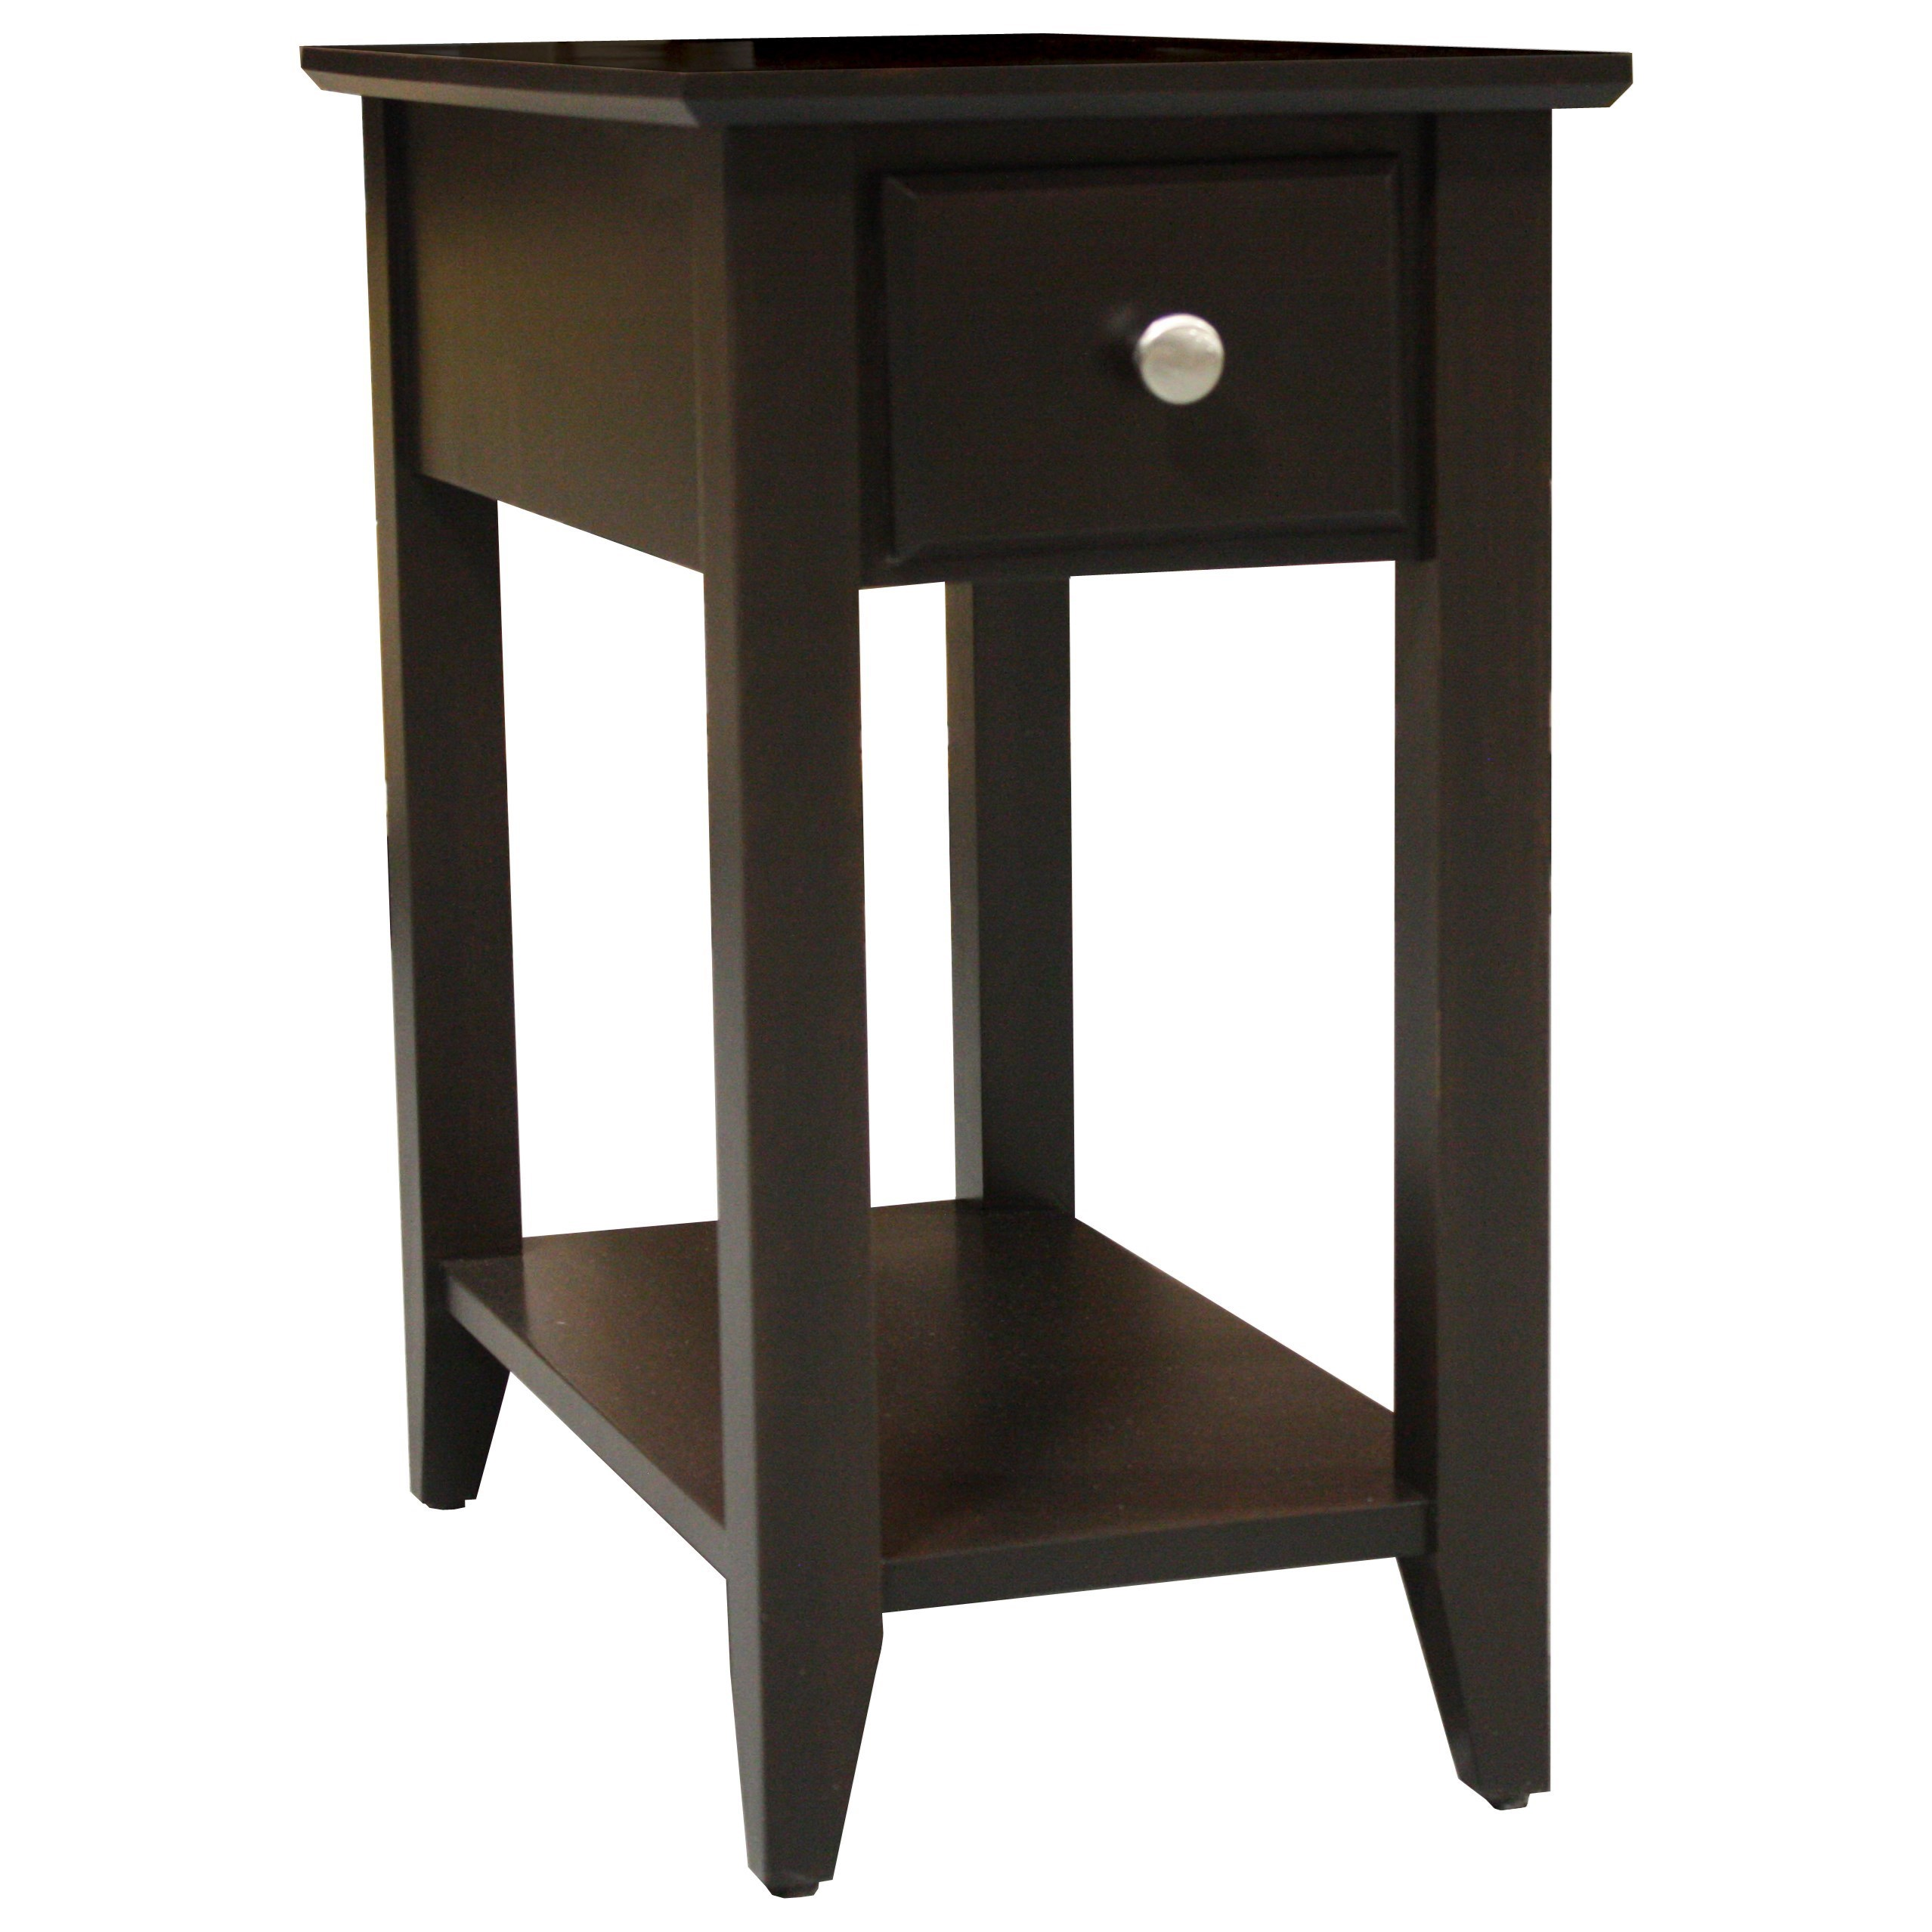 Alder Shaker Tables Chairside Table by Archbold Furniture at Furniture and ApplianceMart